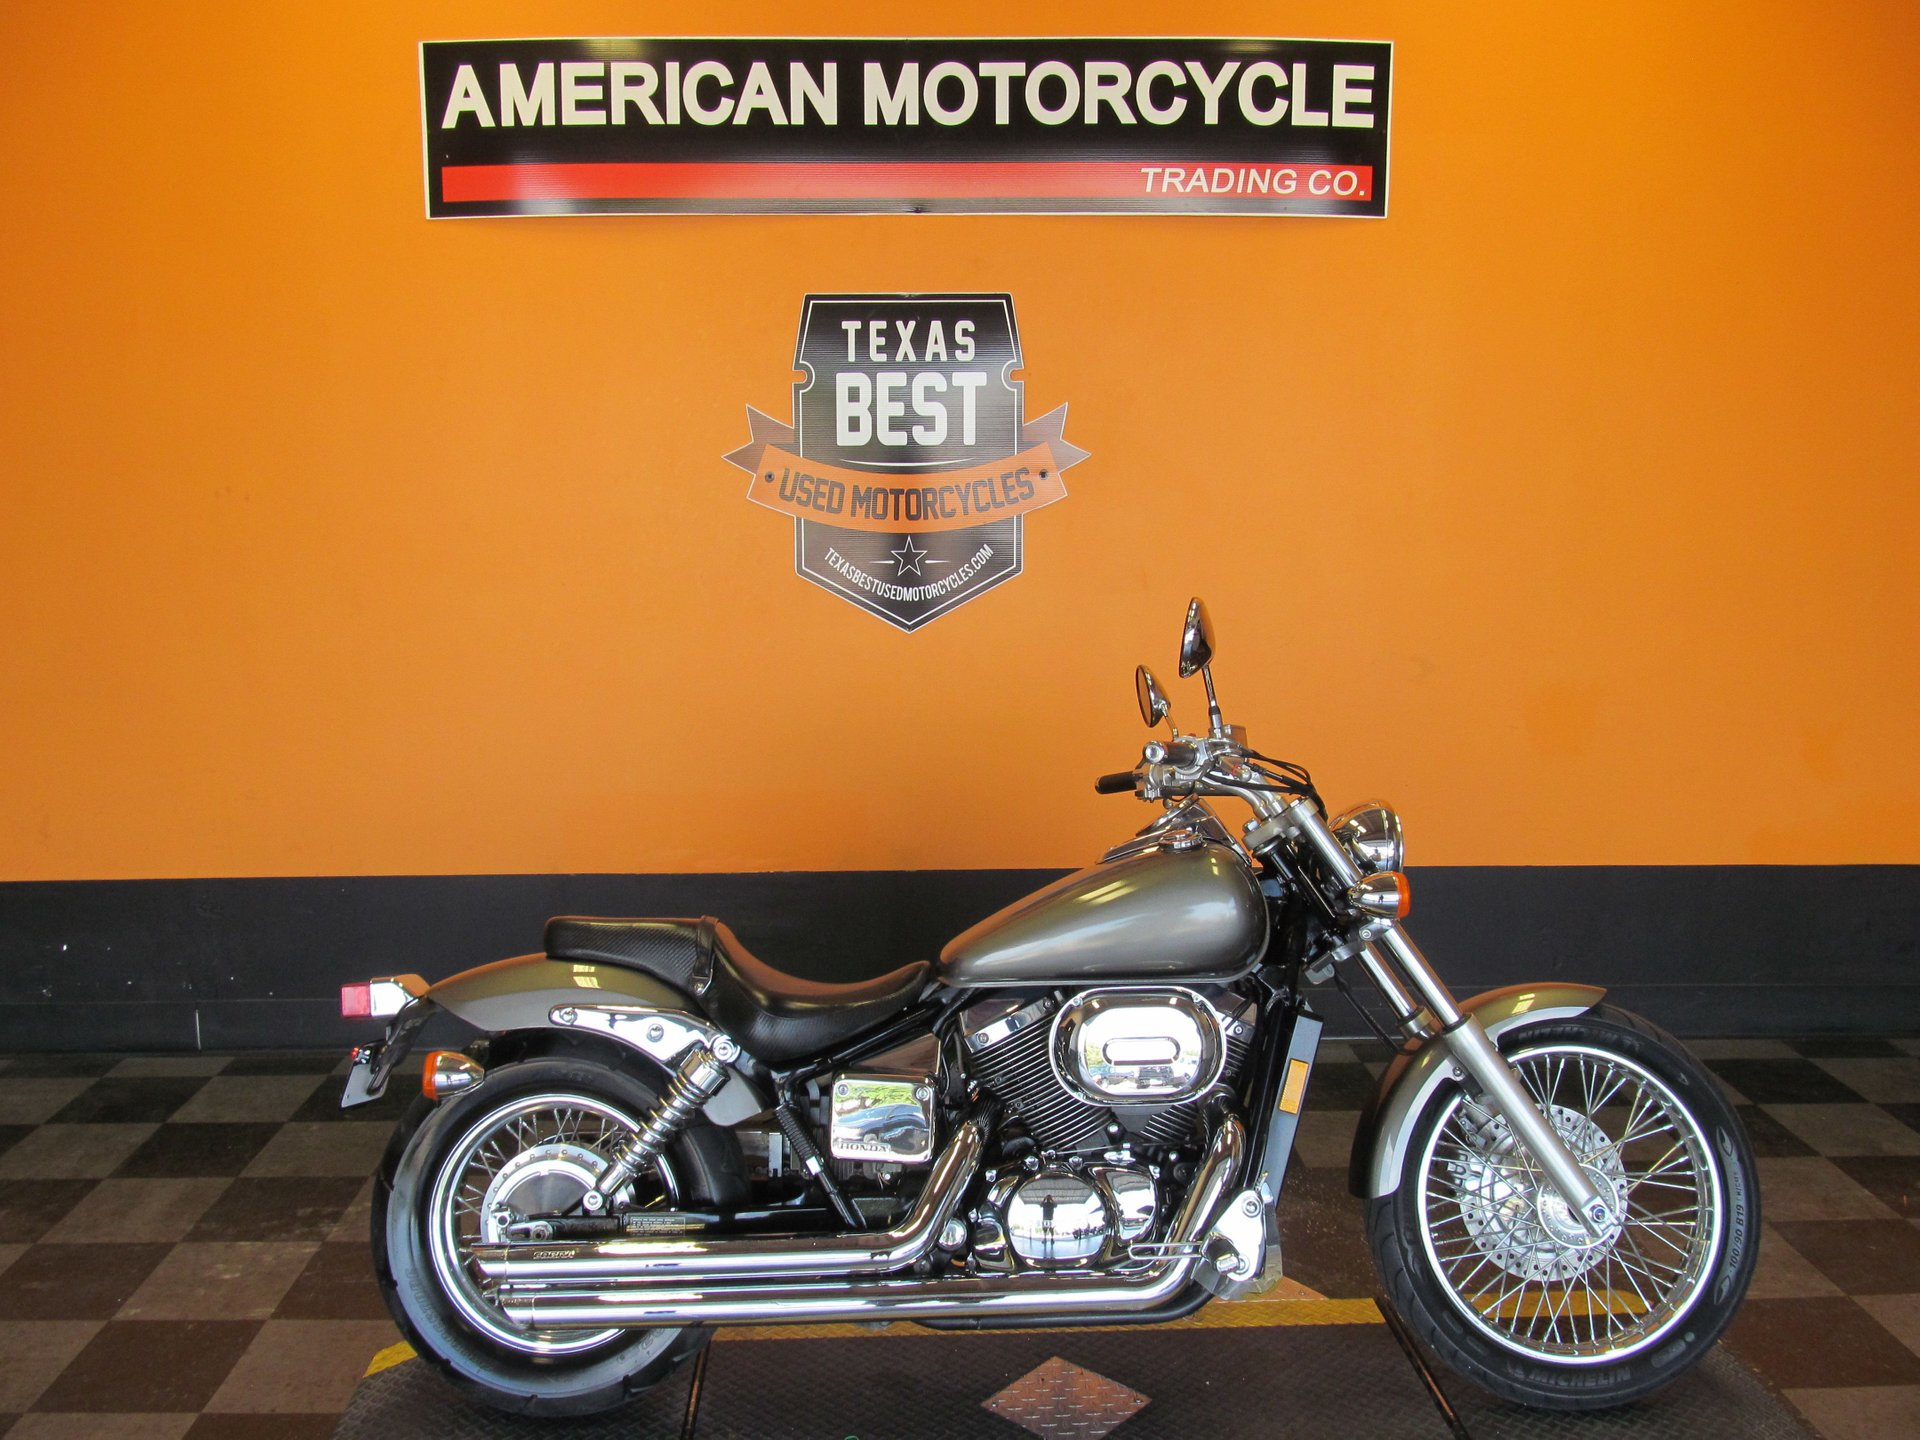 2006 honda shadow spirit vt750dcb